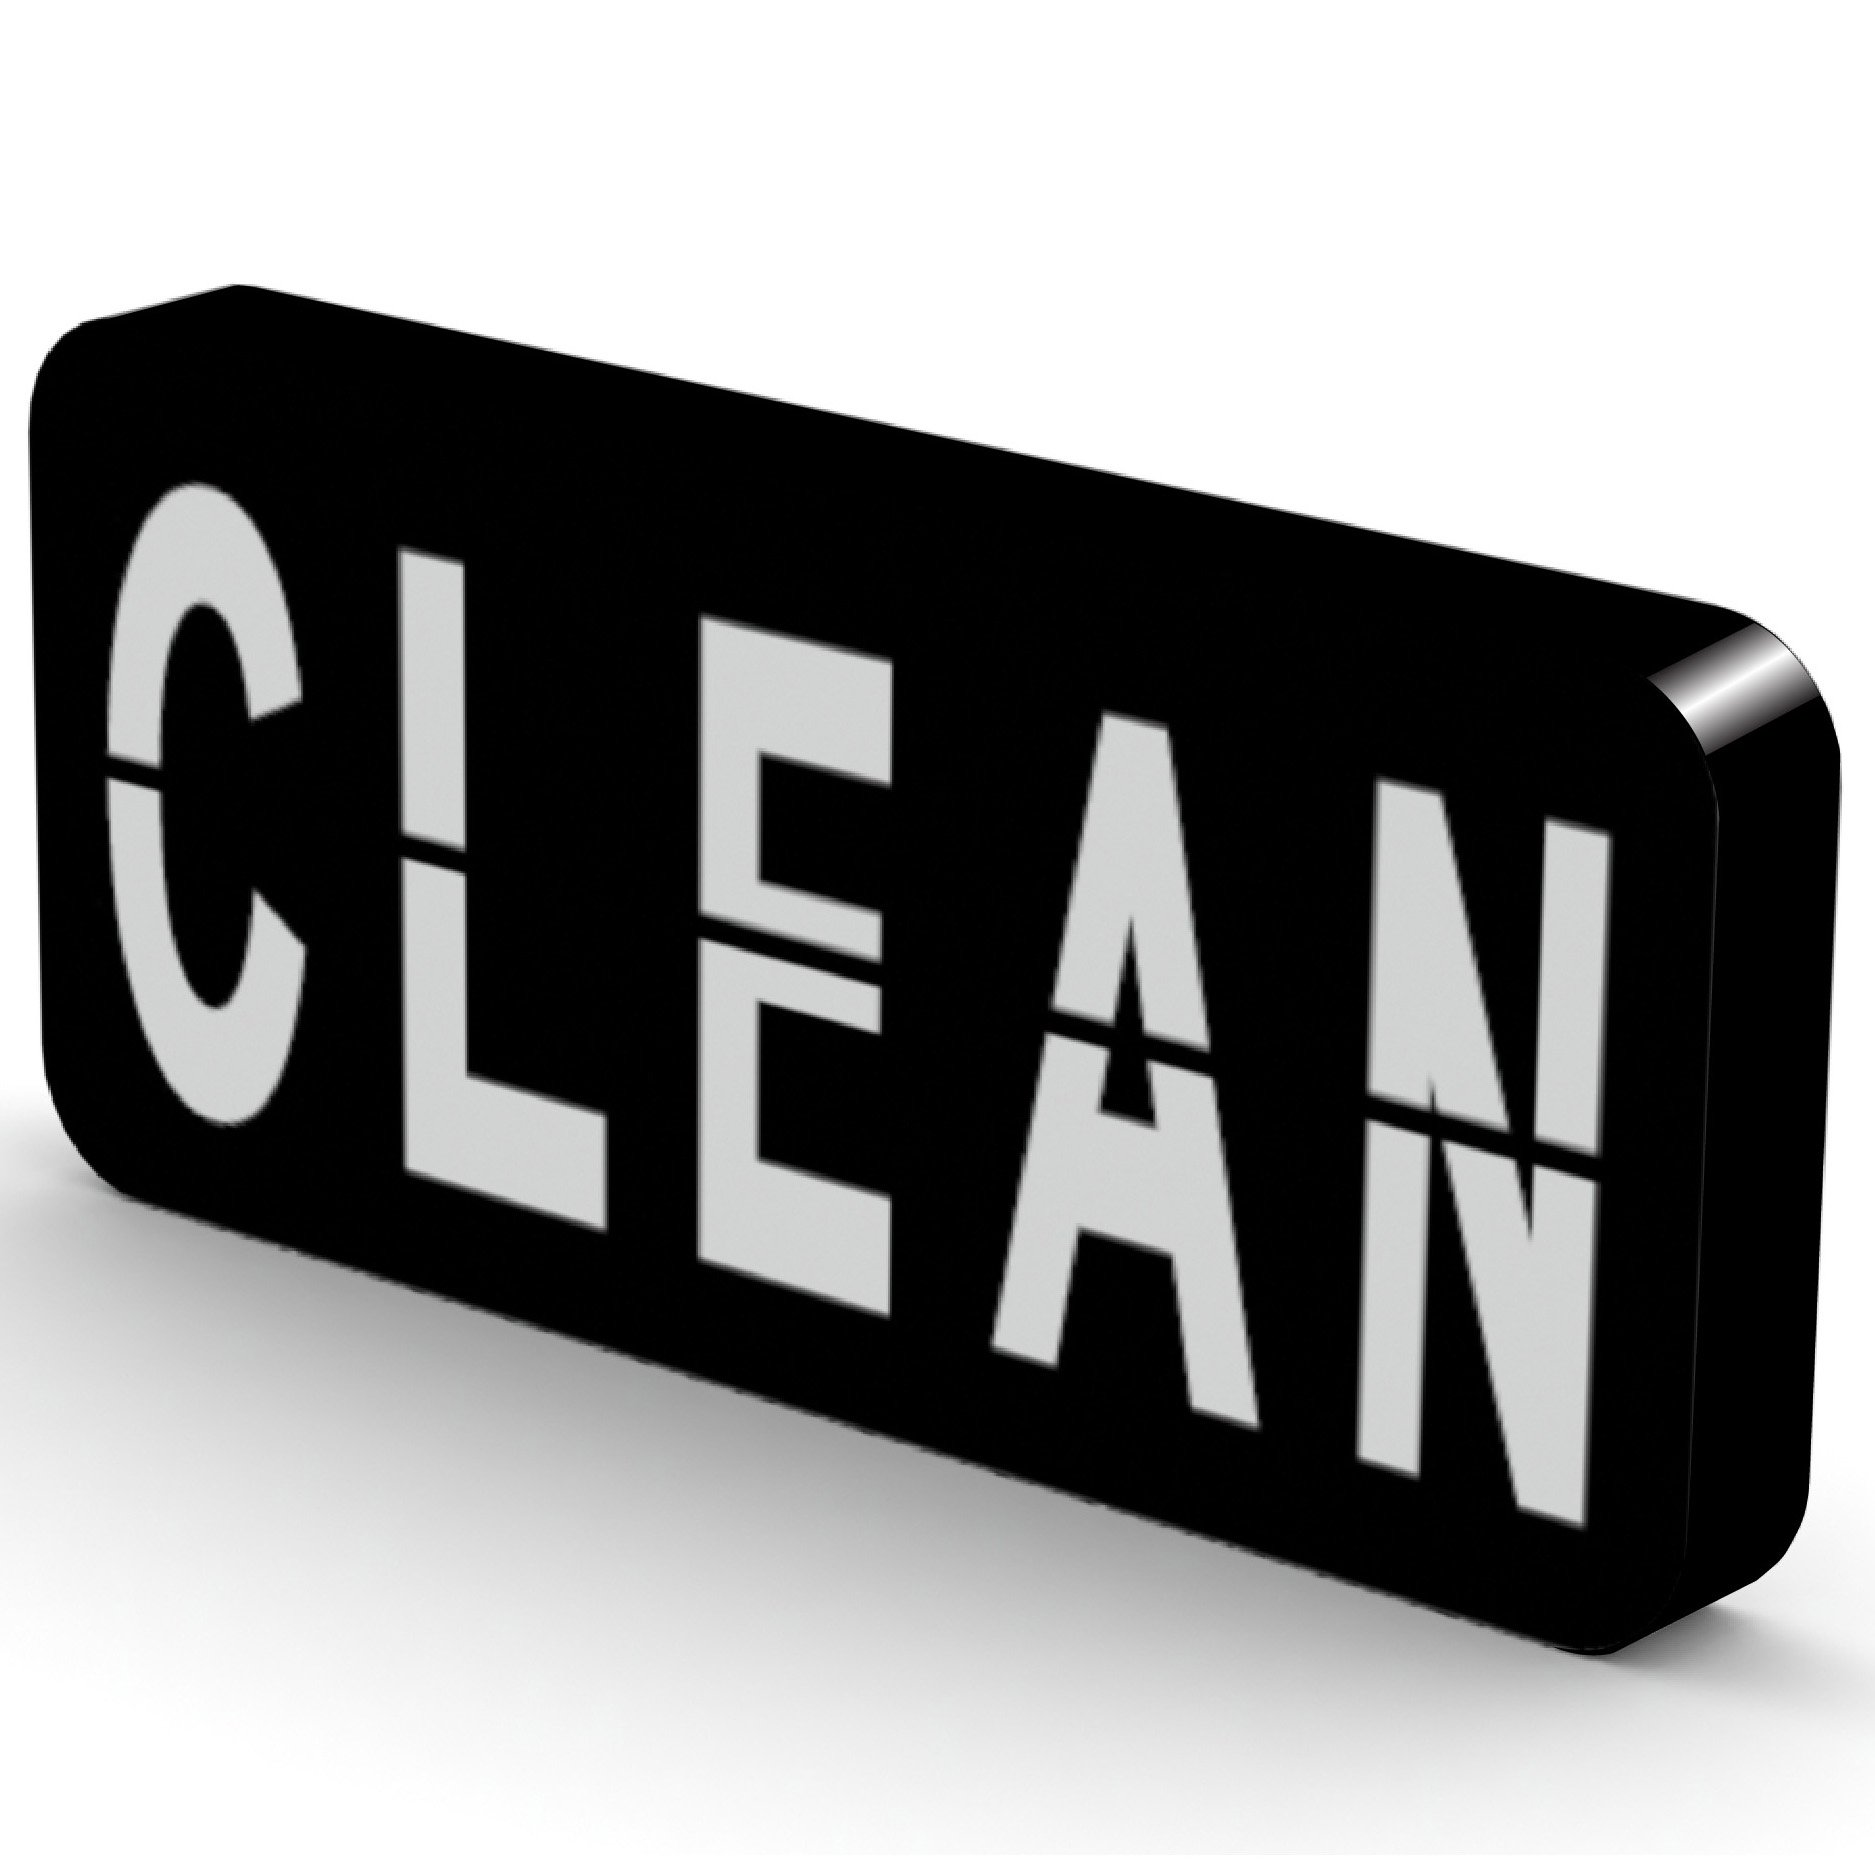 Reversible Double Sided Clean Dirty Dishwasher Magnet - Super Strong, Durable & Waterproof - Premium Kitchen Gadget for Home & Office - Sticks to Stainless Steel - Flip Magnet